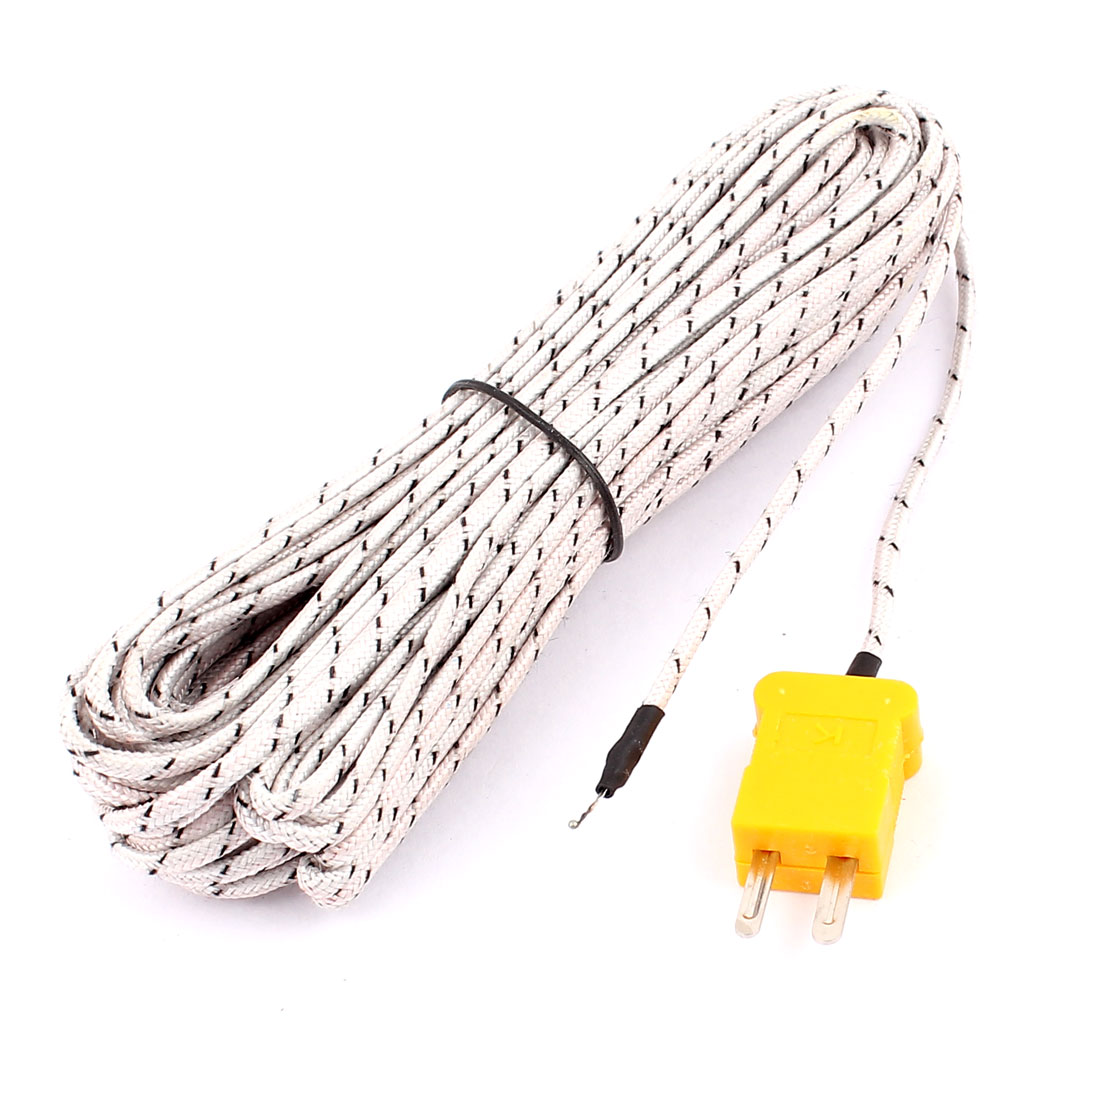 K Type Temperature Measurement Thermocouple Sensor Probe Cable -50 to +204C 1000cm 33Ft Long